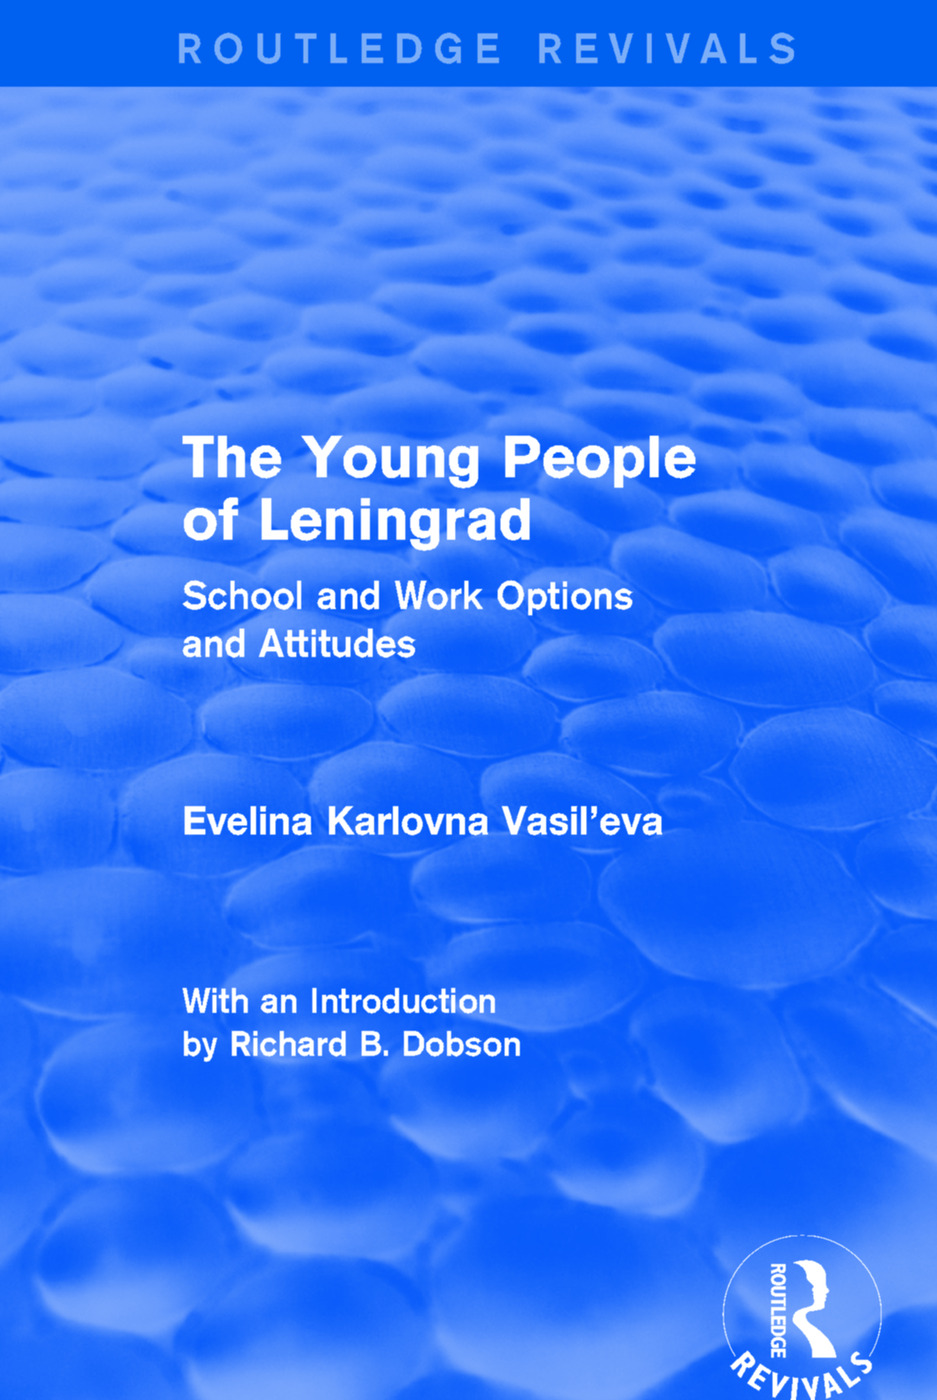 Revival: The Young People of Leningrad (1975): School and Work Options and Attitudes book cover